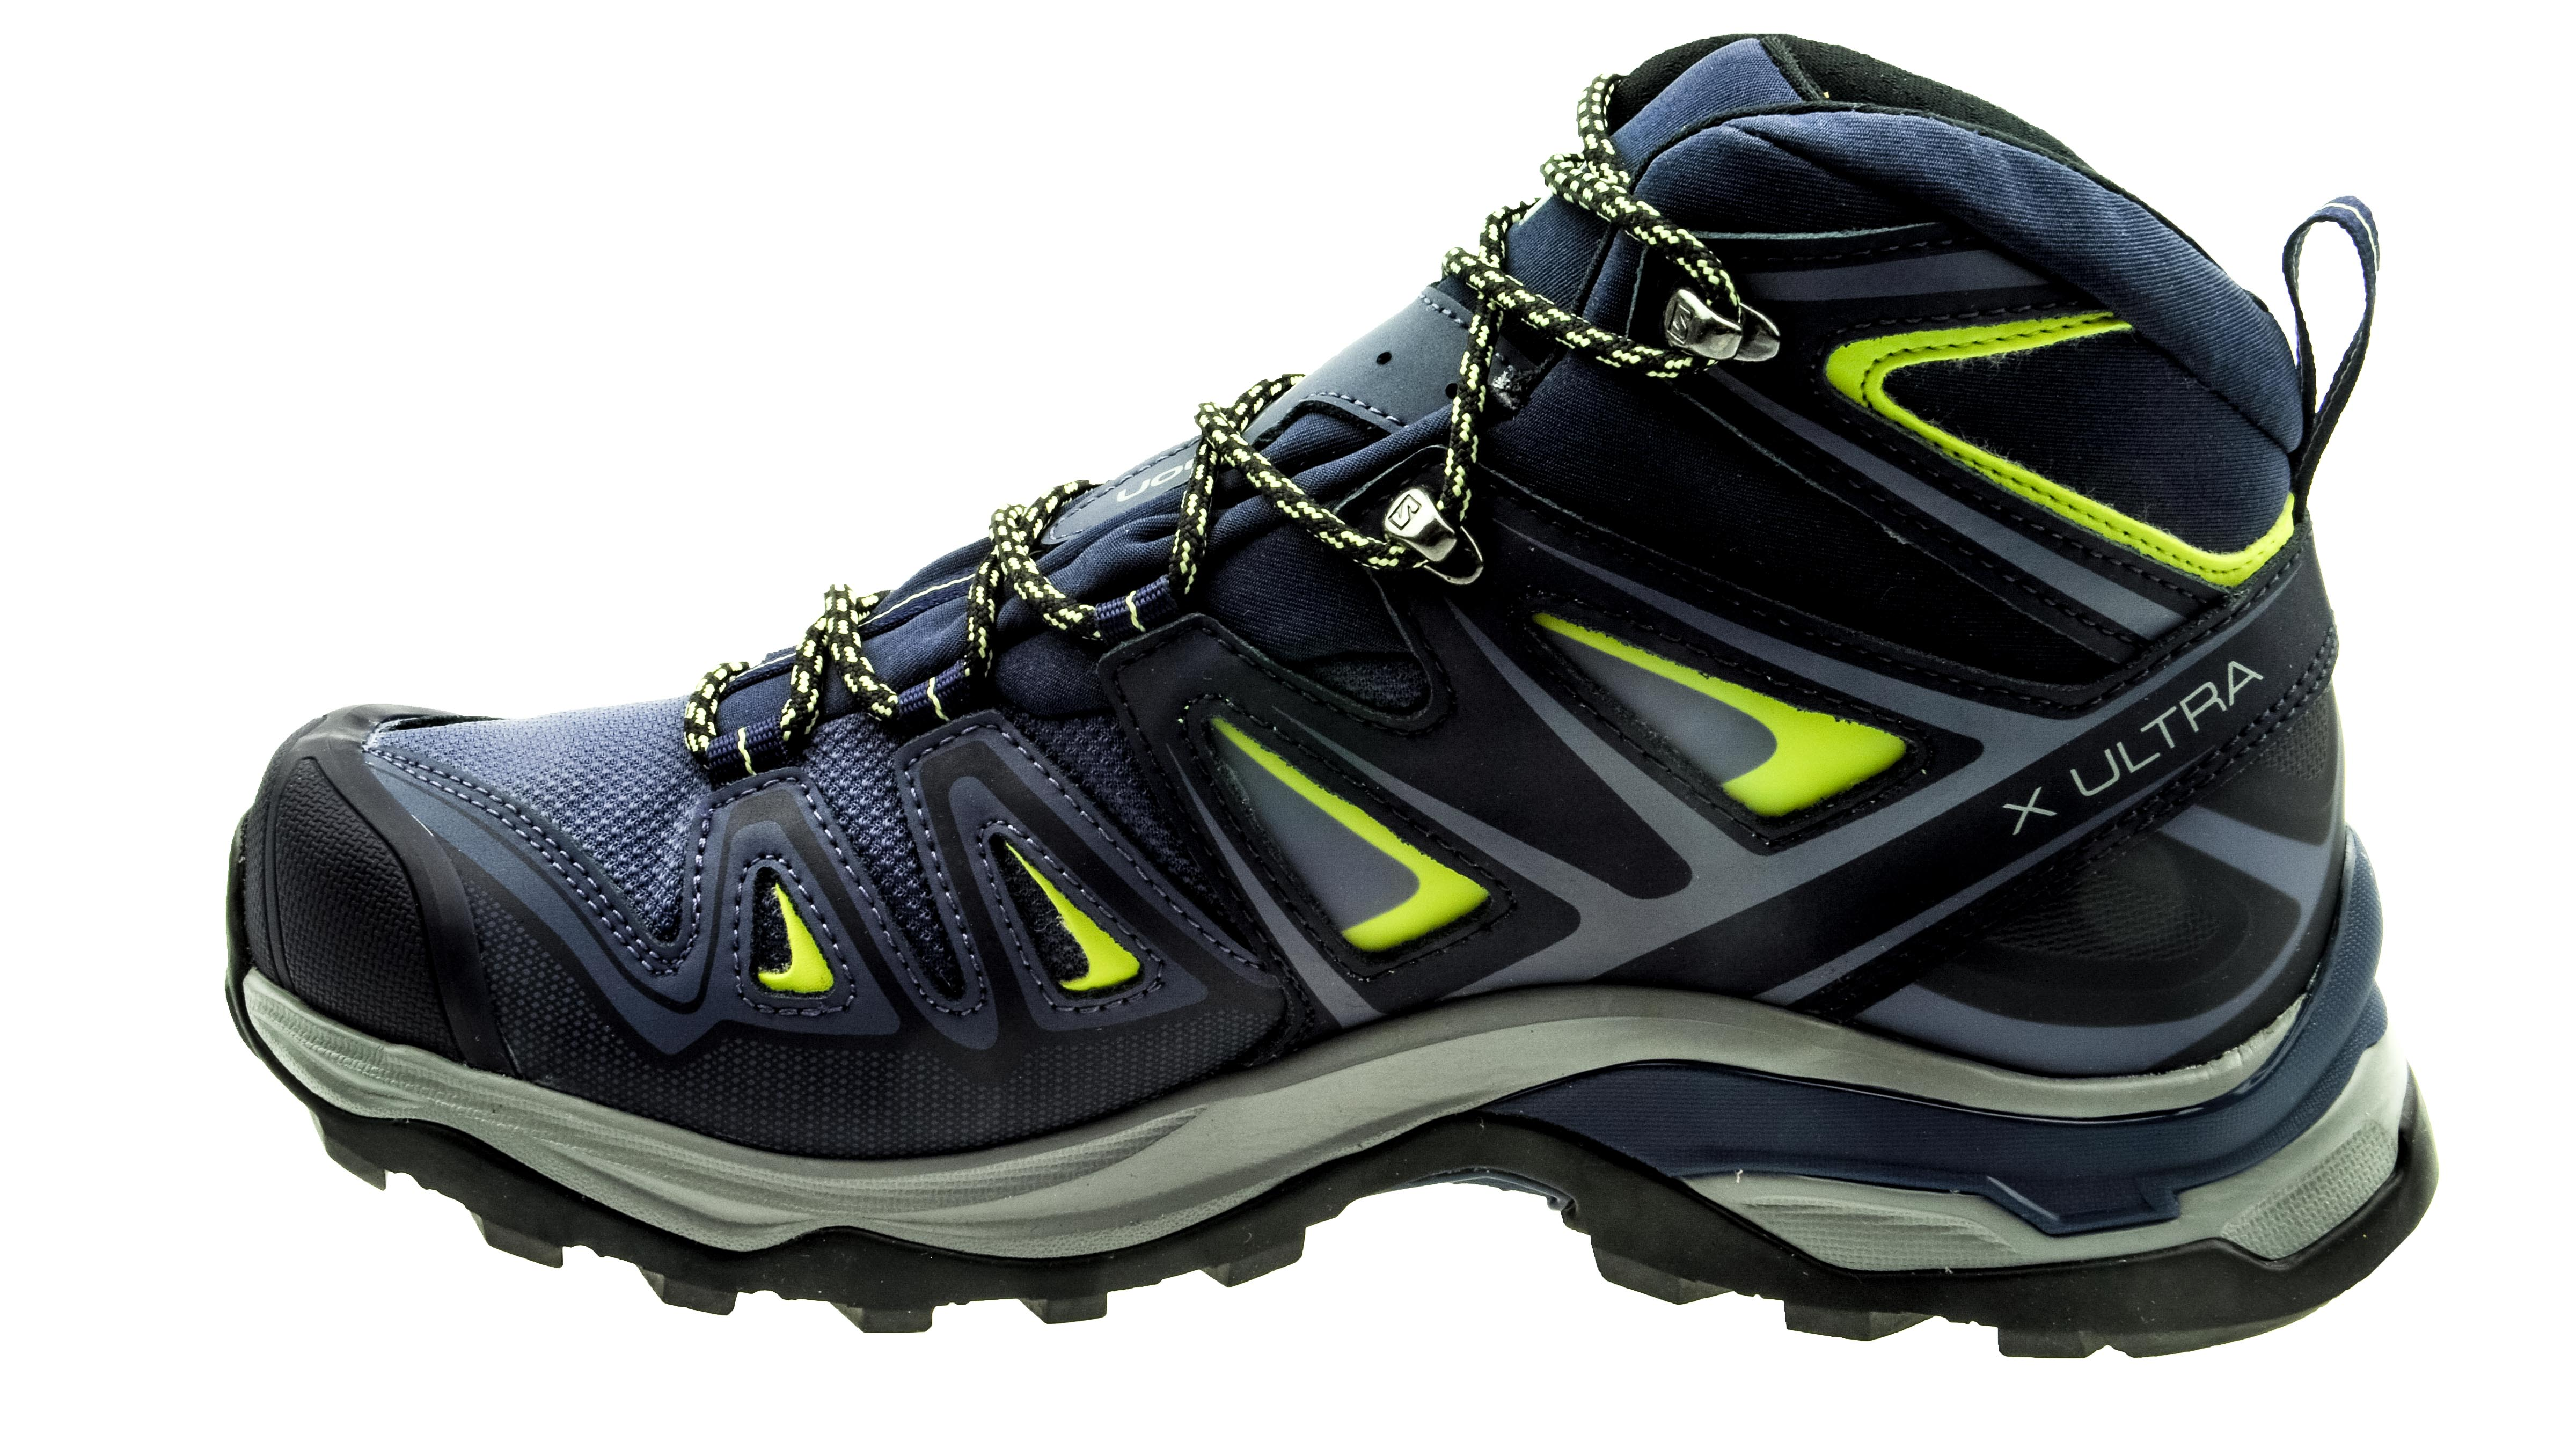 low priced f0d0e 9799c Salomon X Ultra Mid 3 GTX crown blue/evening blue/sunny lime